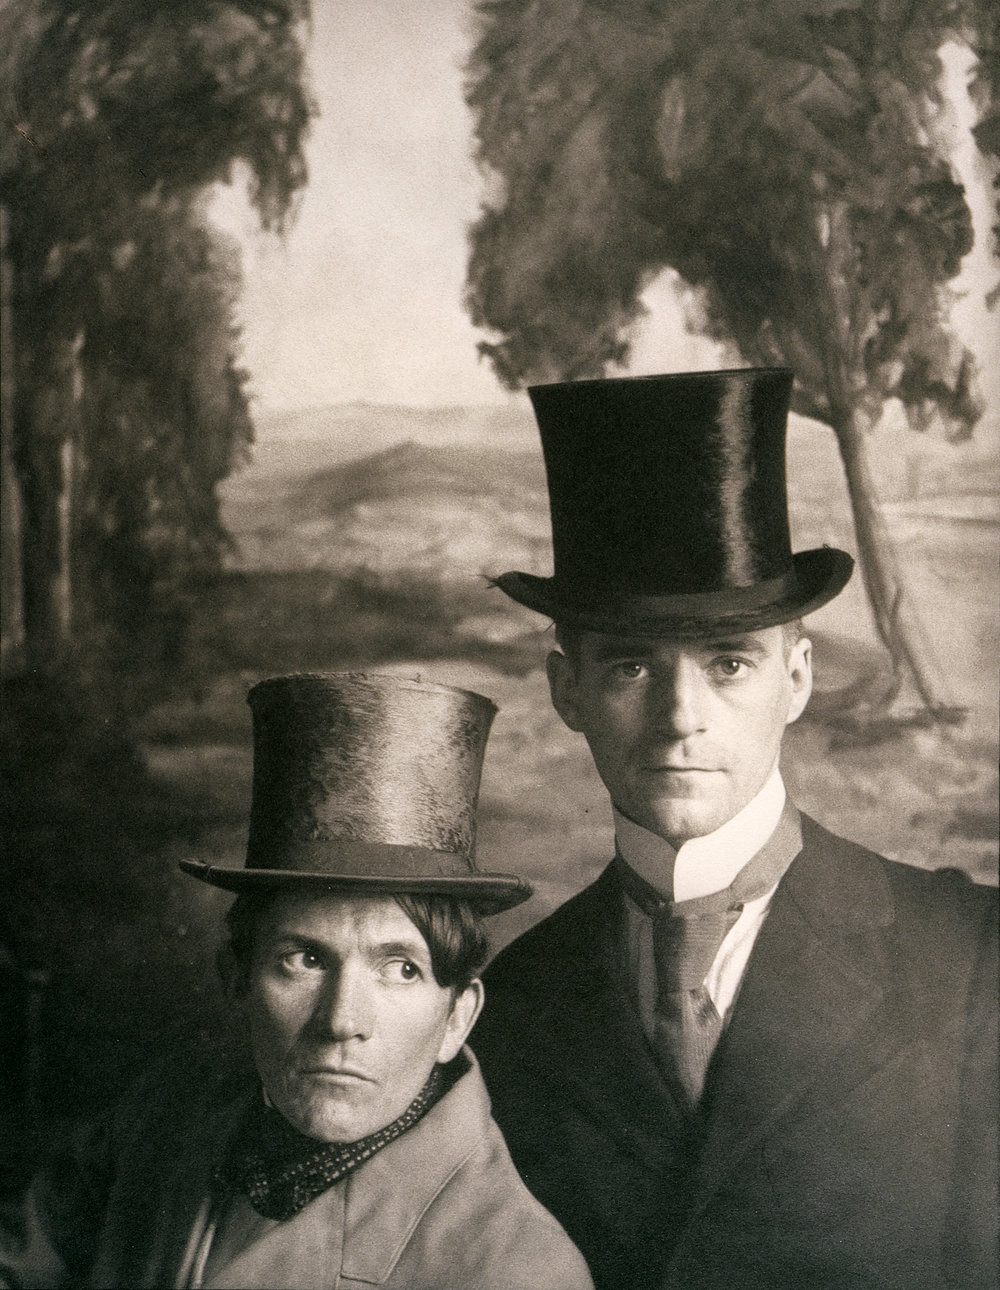 McDermott & McGough,  Portrait of the Artists (with Top Hats), 1865,  Palladium, 1991 Courtesy of the Artists